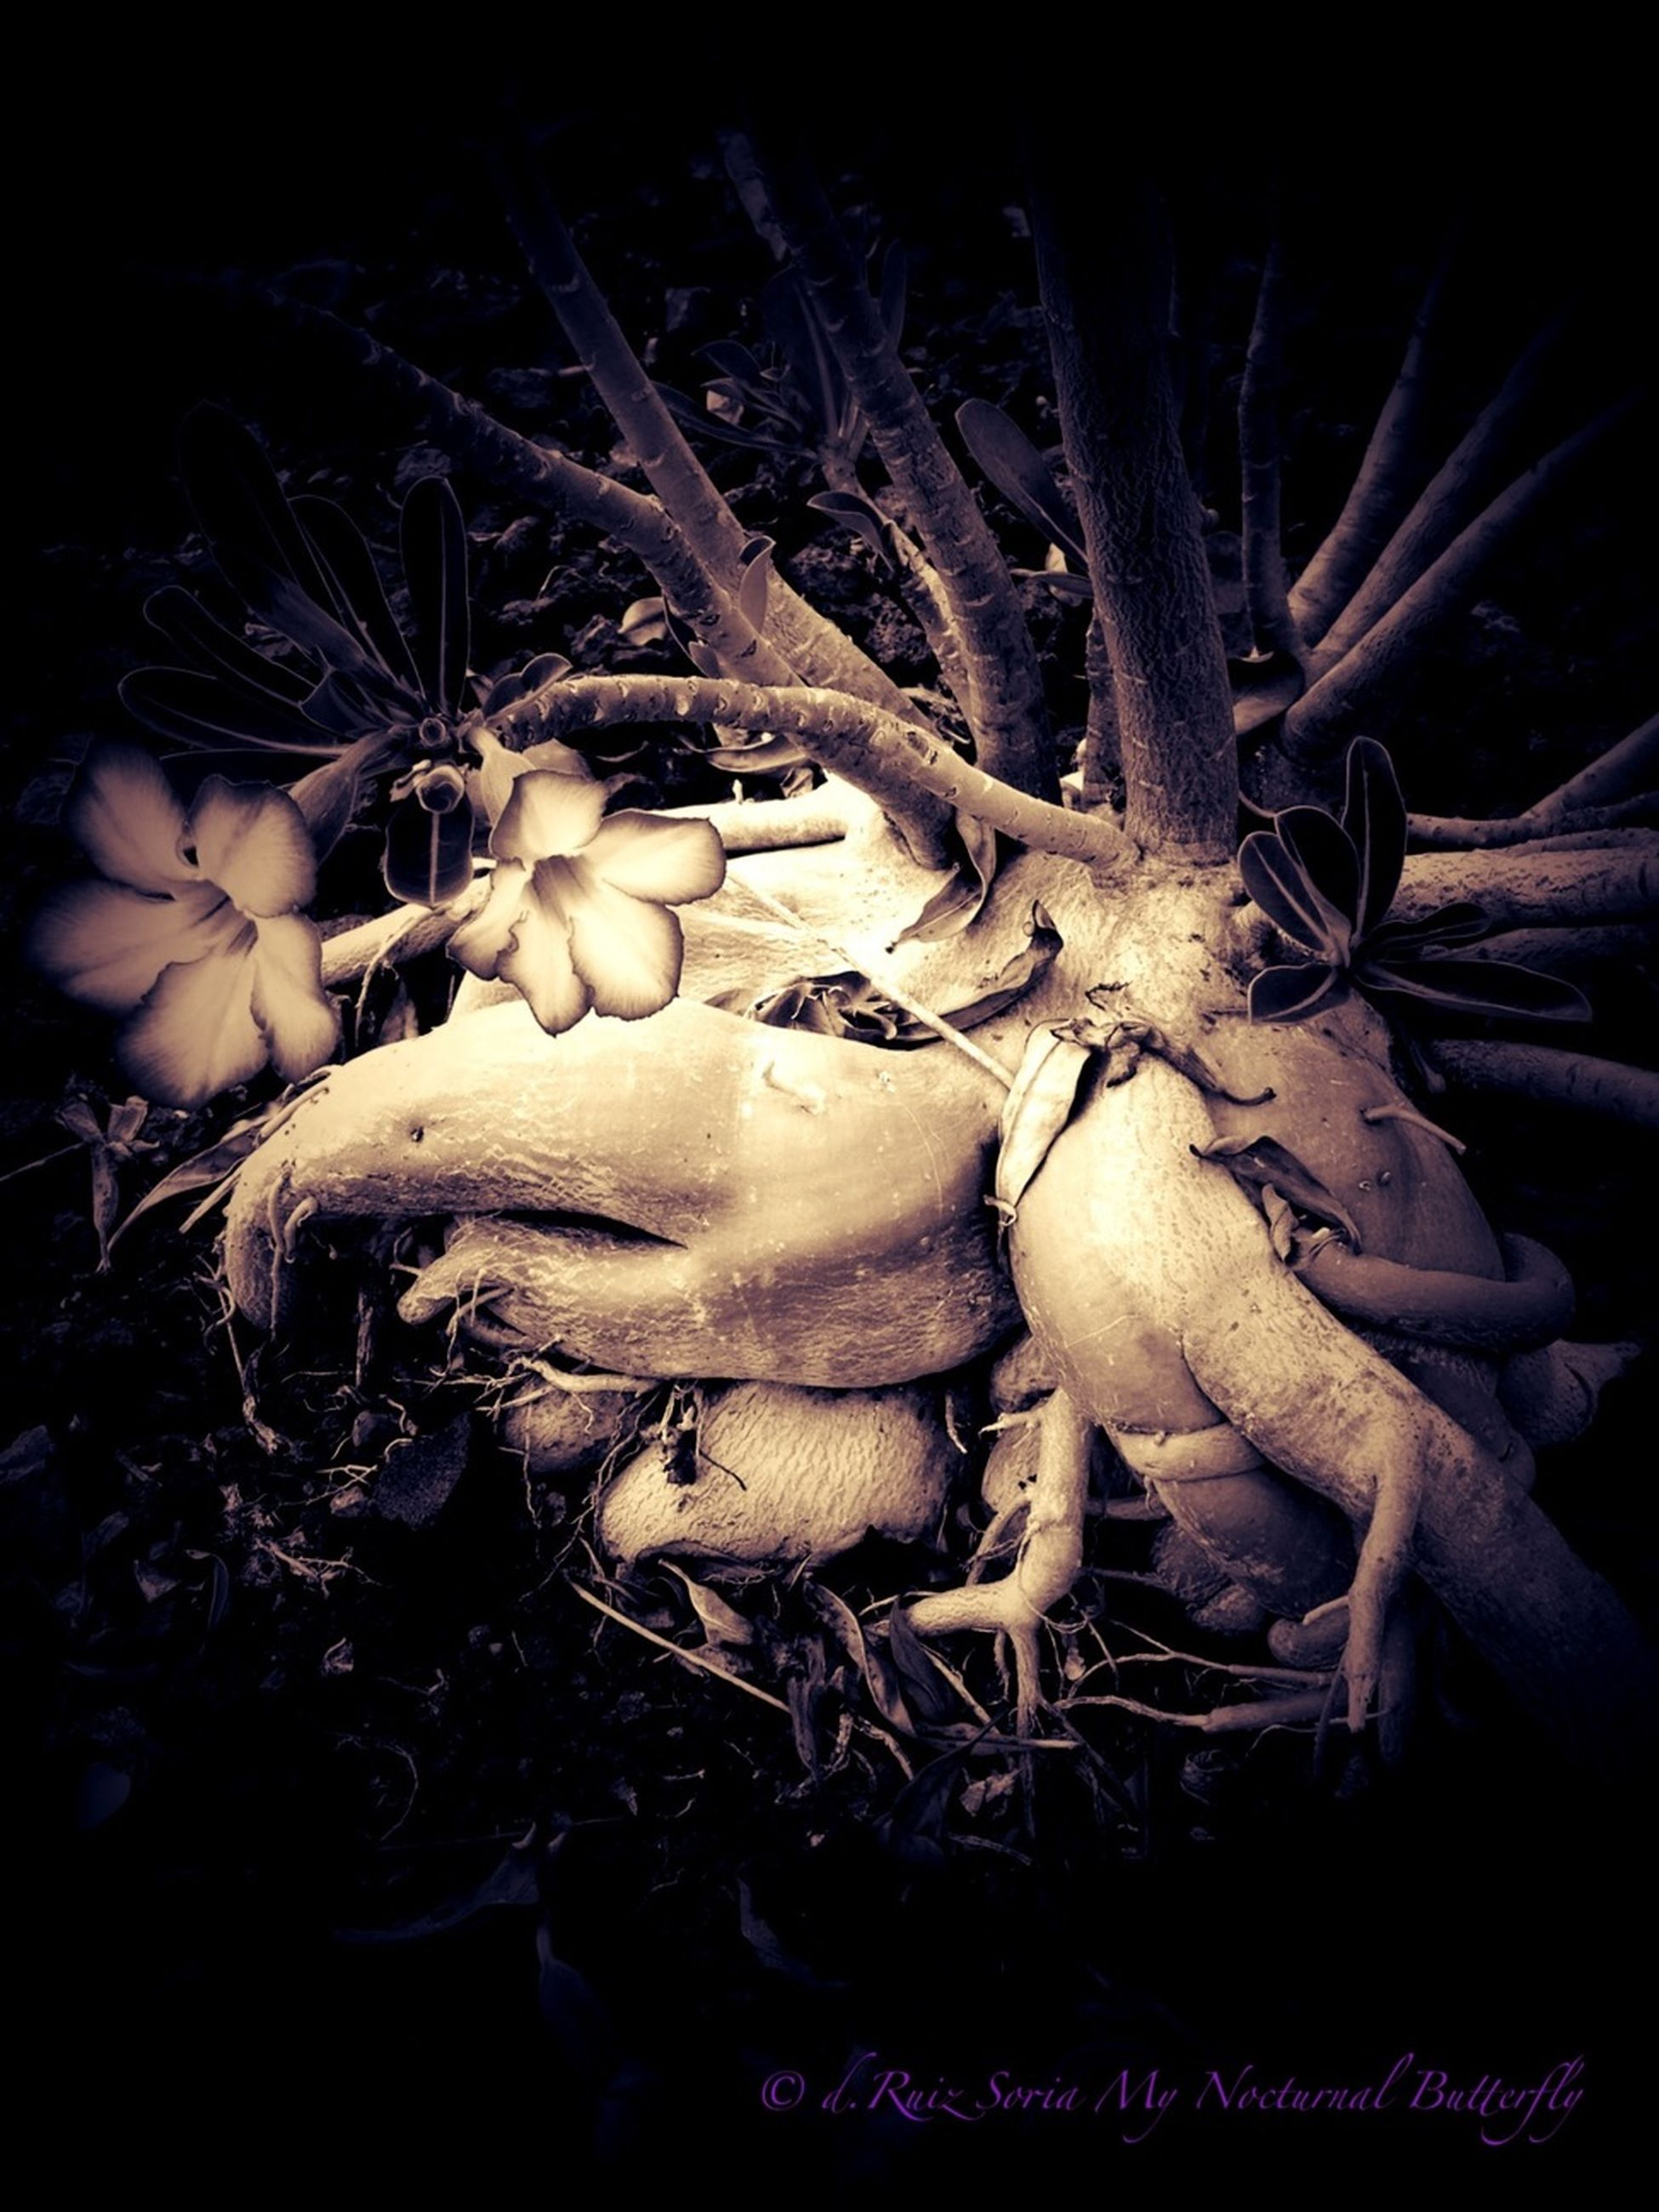 night, branch, bare tree, close-up, tree, black background, dark, nature, growth, auto post production filter, dead plant, no people, studio shot, dried plant, plant, tranquility, outdoors, spooky, forest, dry